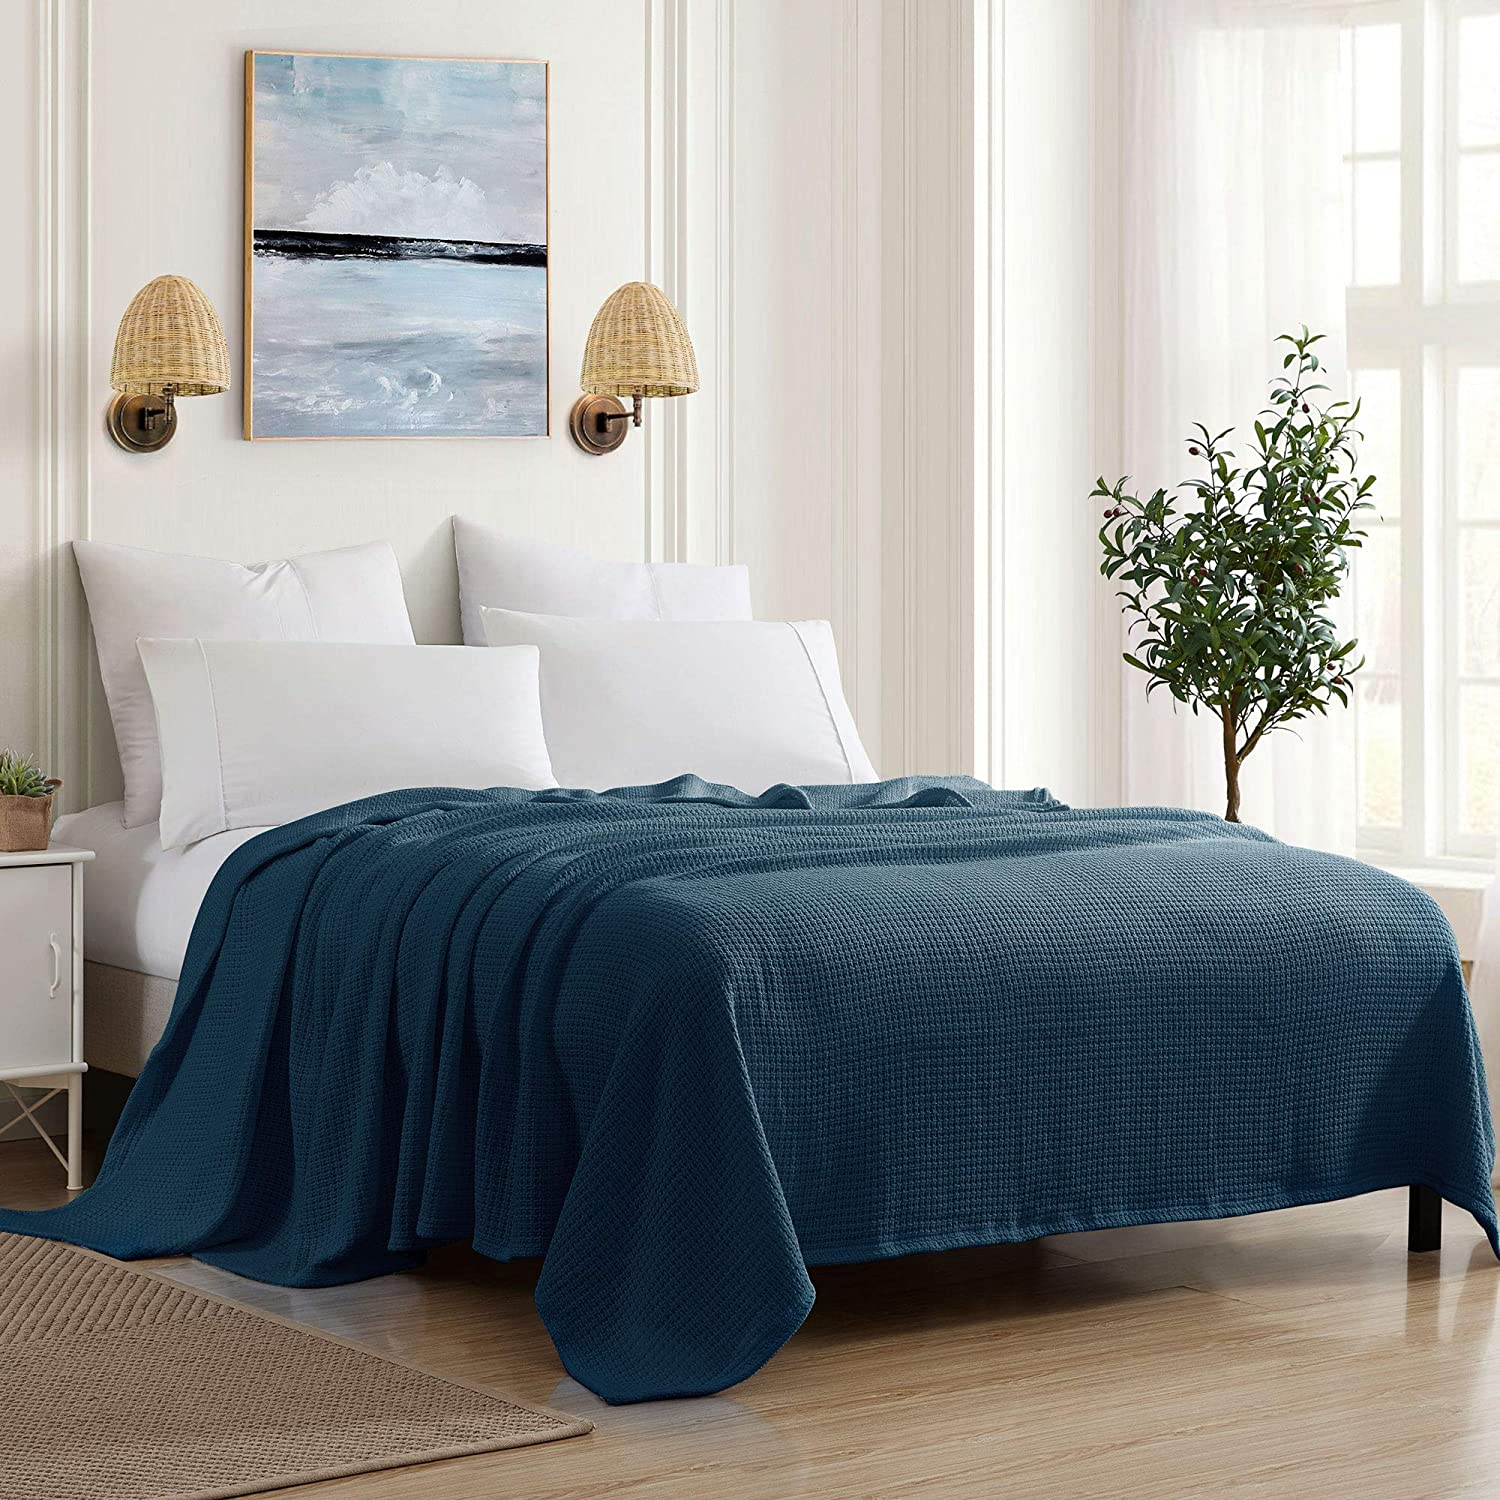 Sweet Home Collection 100% Fine Cotton Blanket Luxurious Breathable Weave Stylish Design Soft and Comfortable All Season Warmth, King, Navy